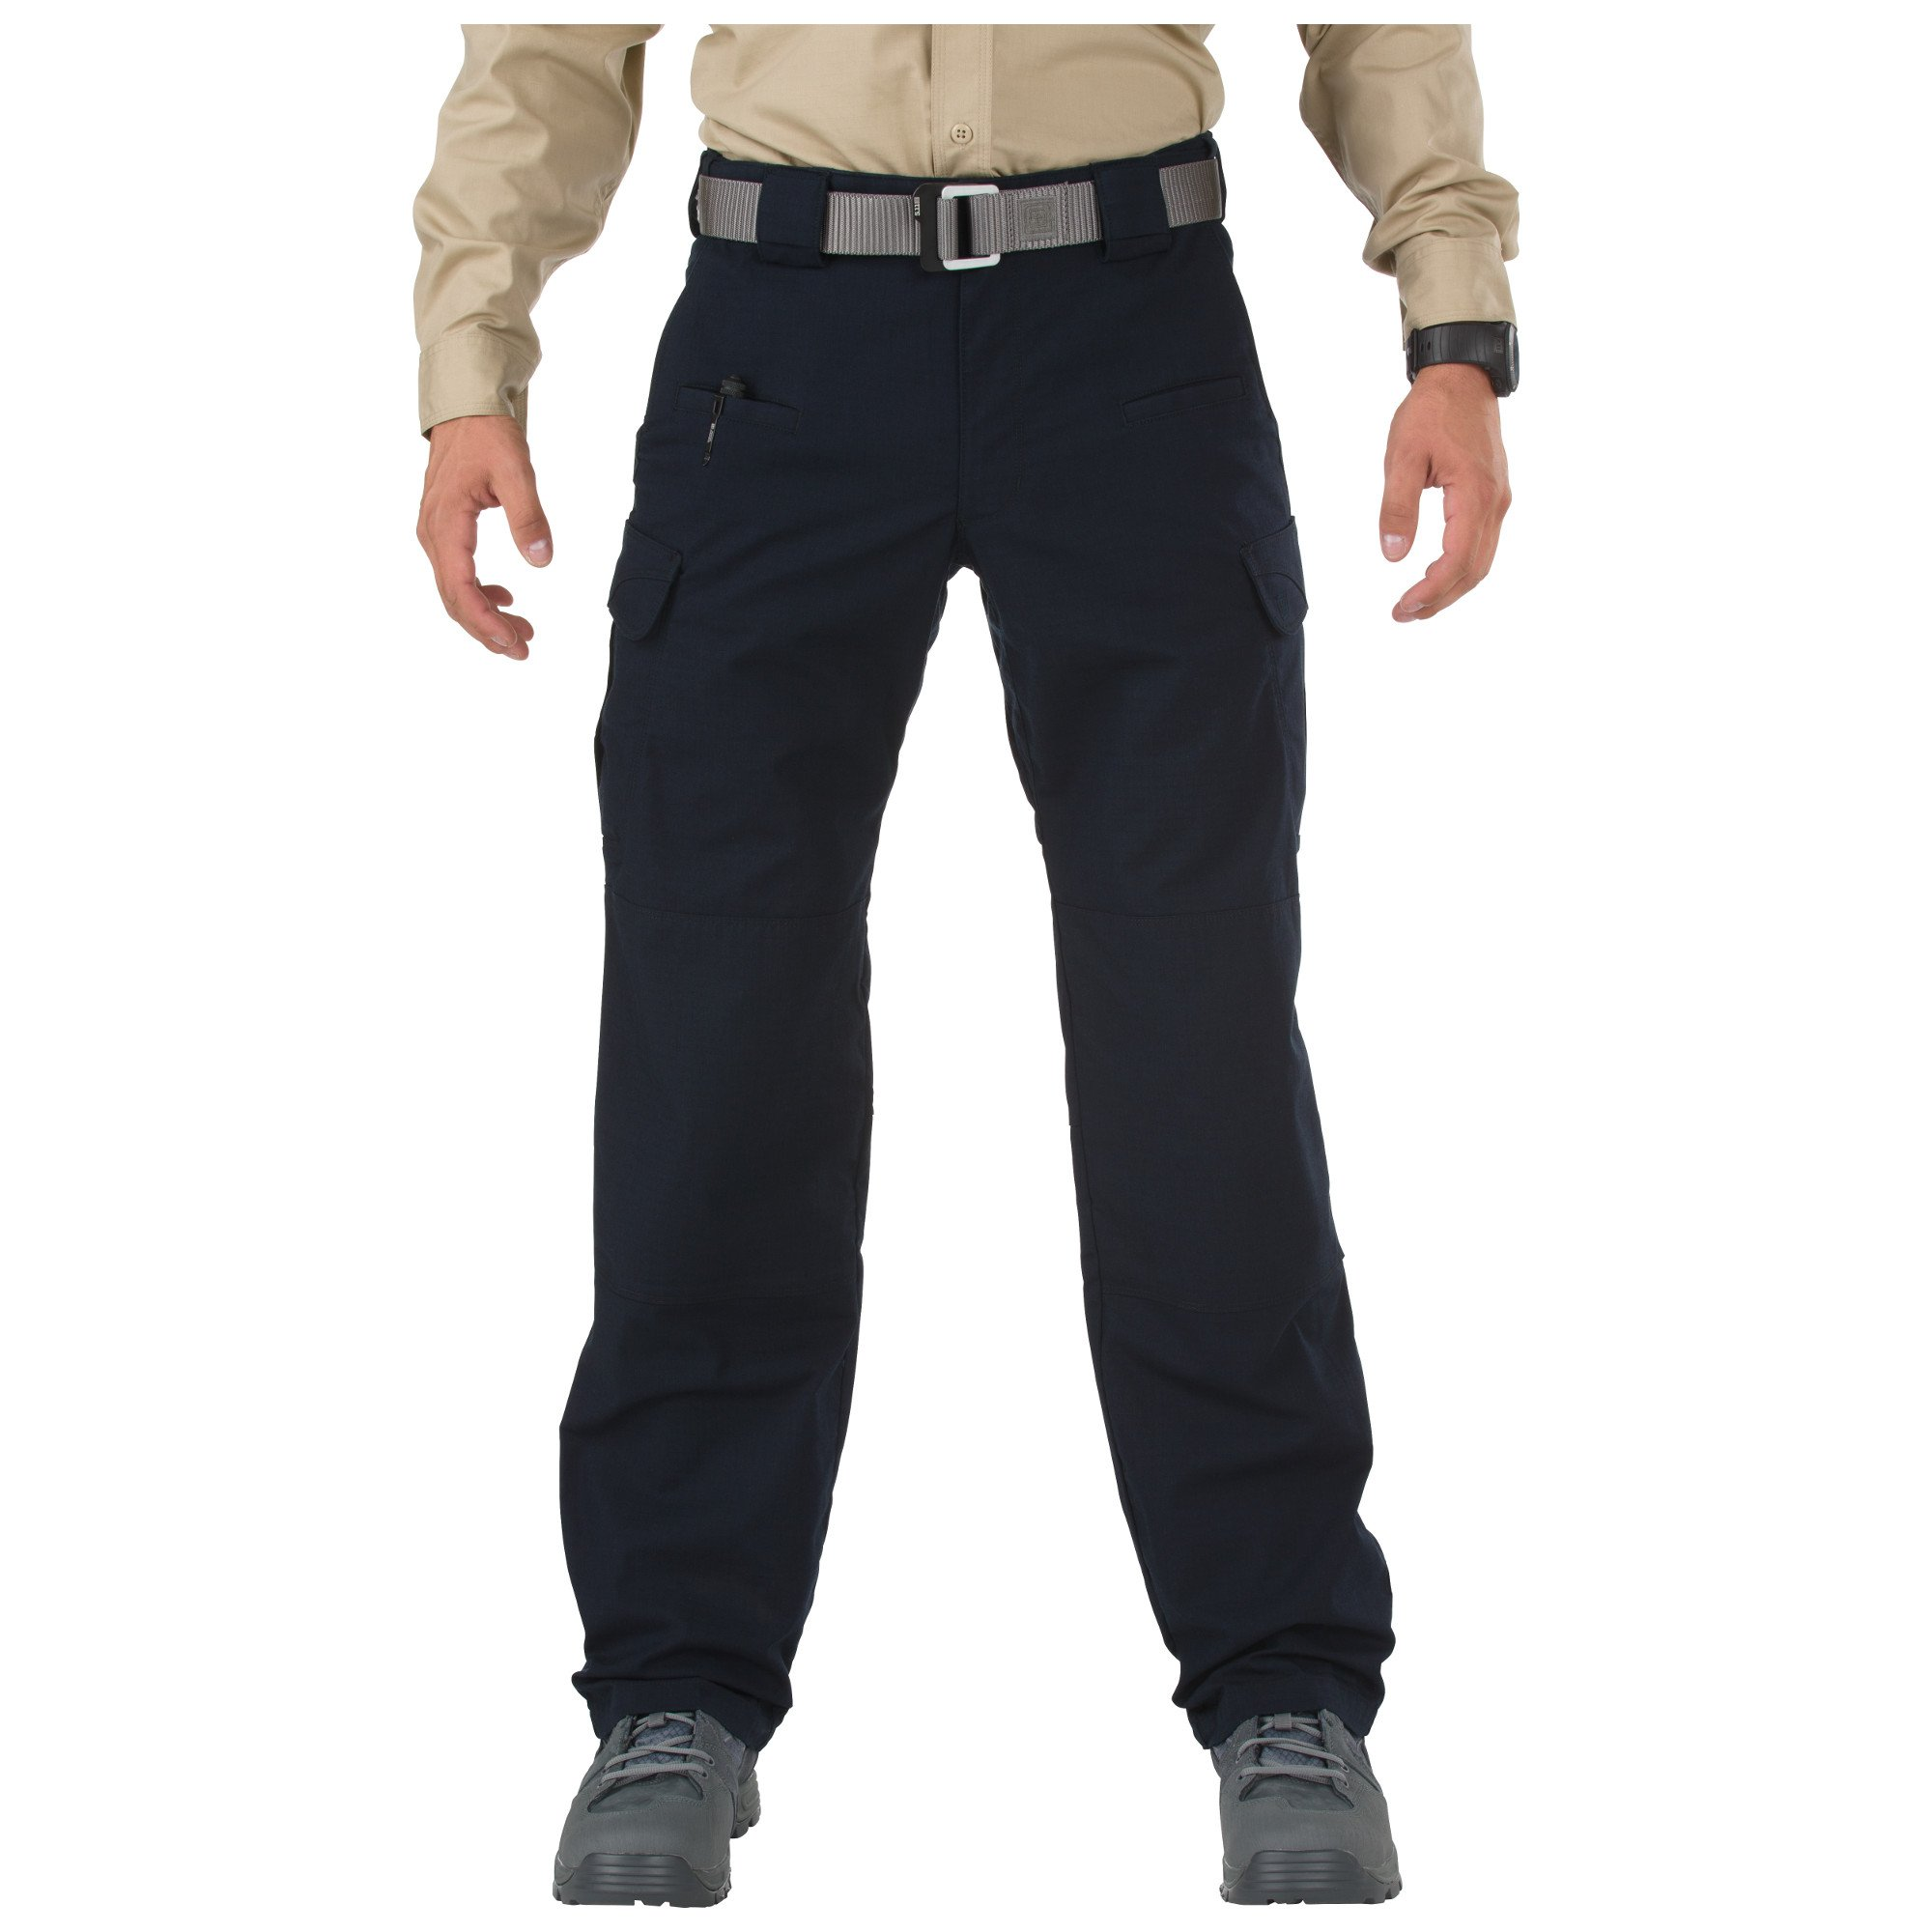 5.11 Tactical Stryke Pant, Dark Navy, 28x34 by 5.11 (Image #4)